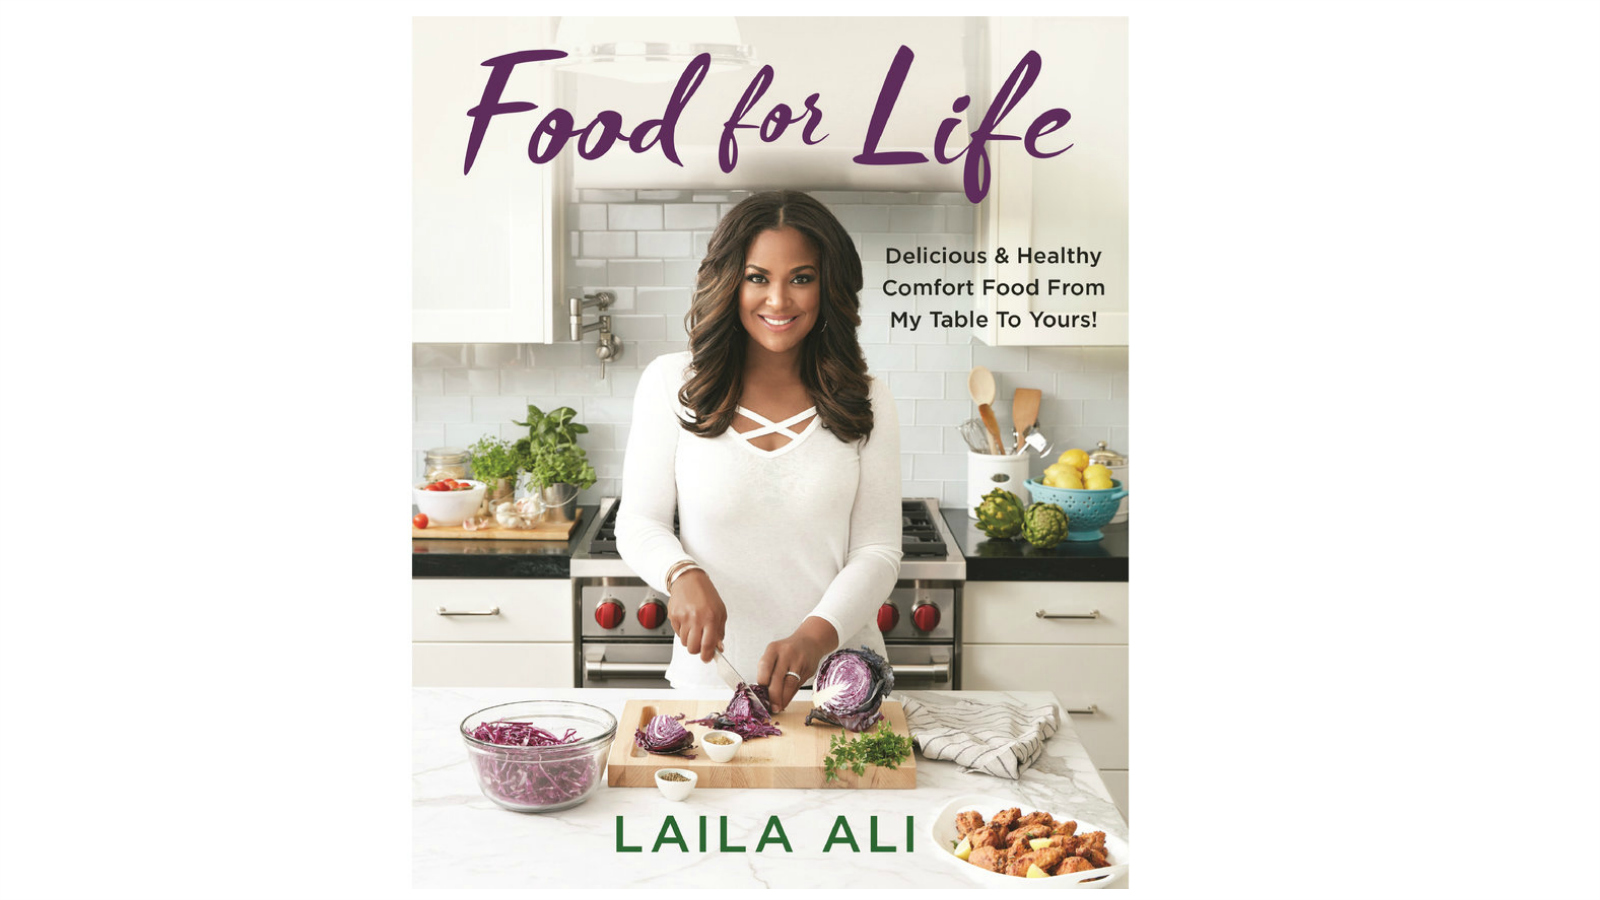 laila-ali-cookbook-blog0617.jpg